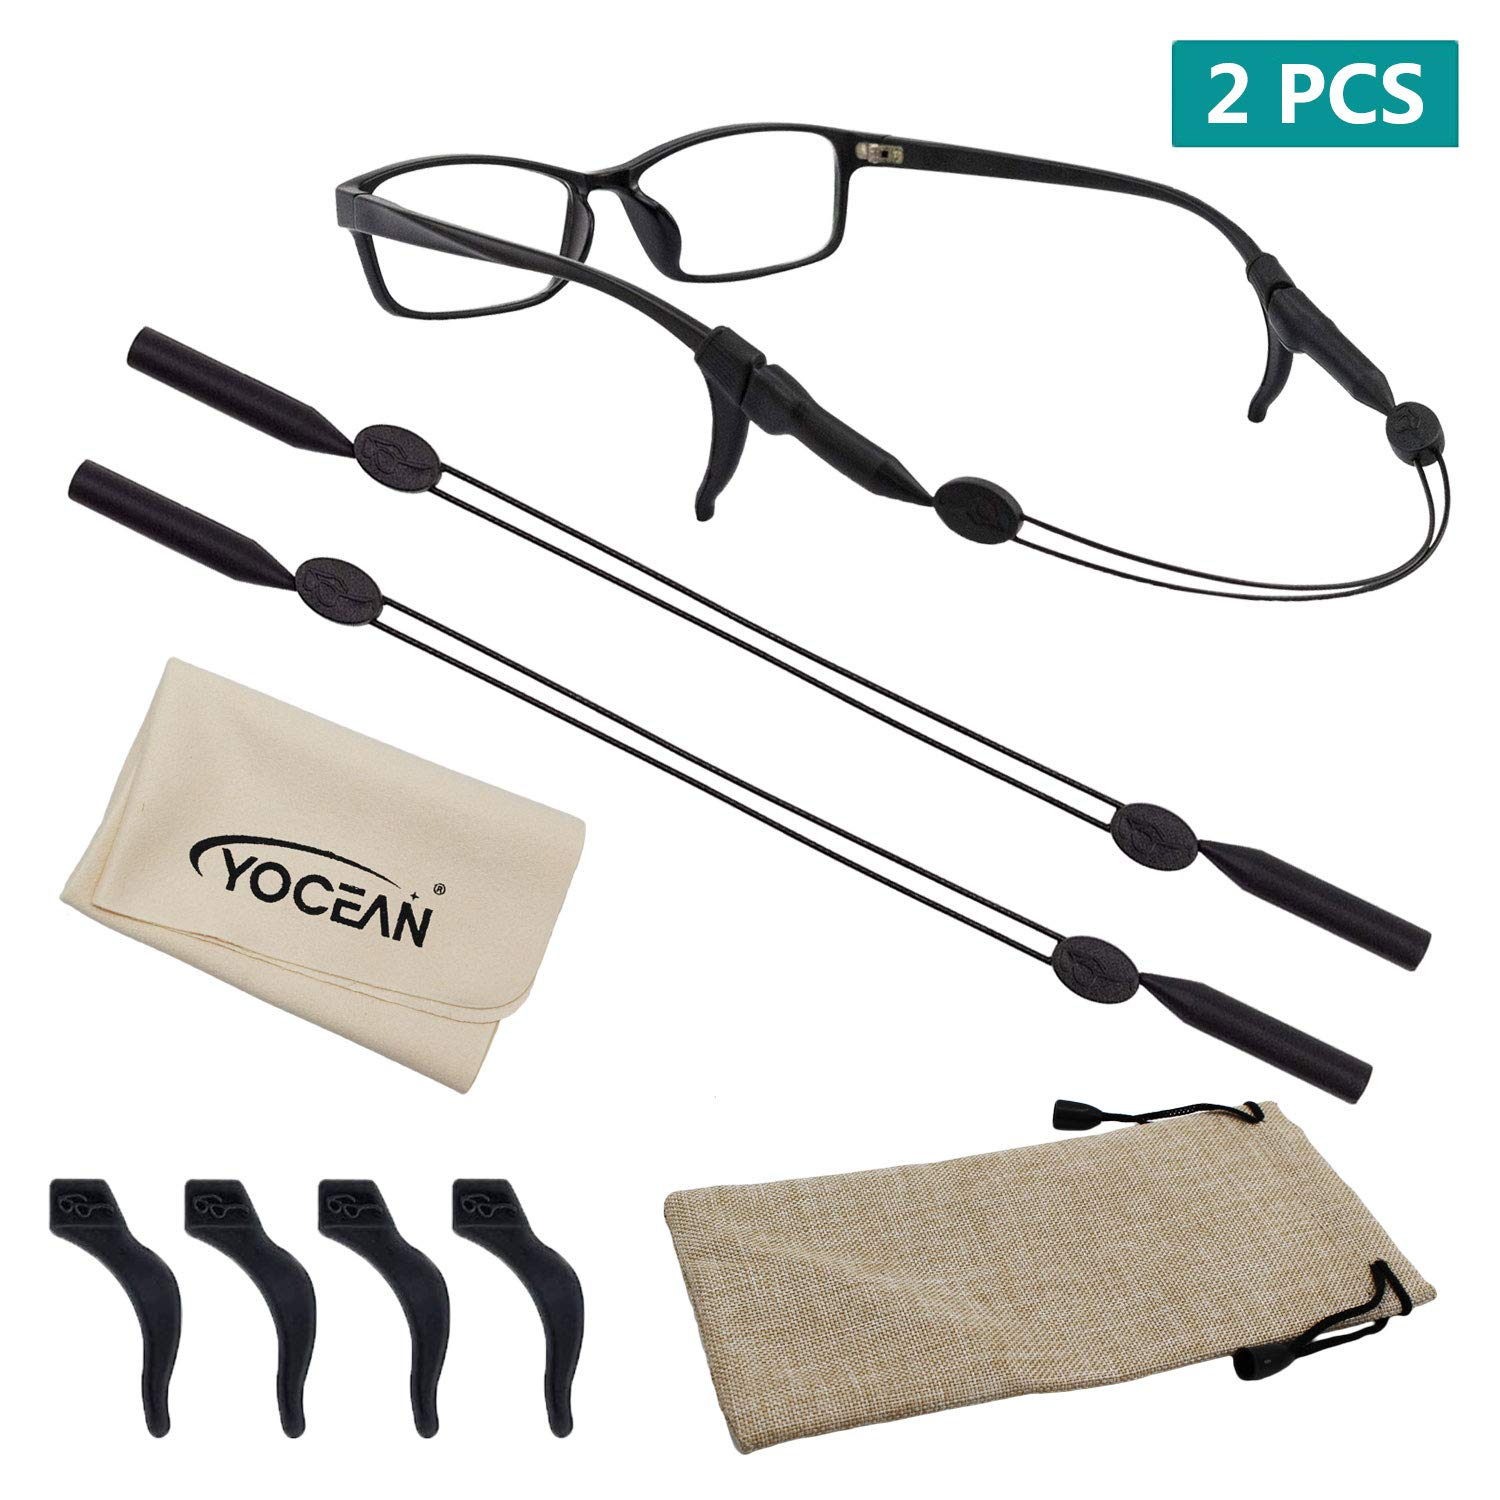 Eyeglass String Holder with 4 Anti-Slip Hooks 1 Pack Glasses Cloth and Glasses Bag 2 Pack - No Tail Sunglass Strap YOCEAN Adjustable Eyewear Retainer